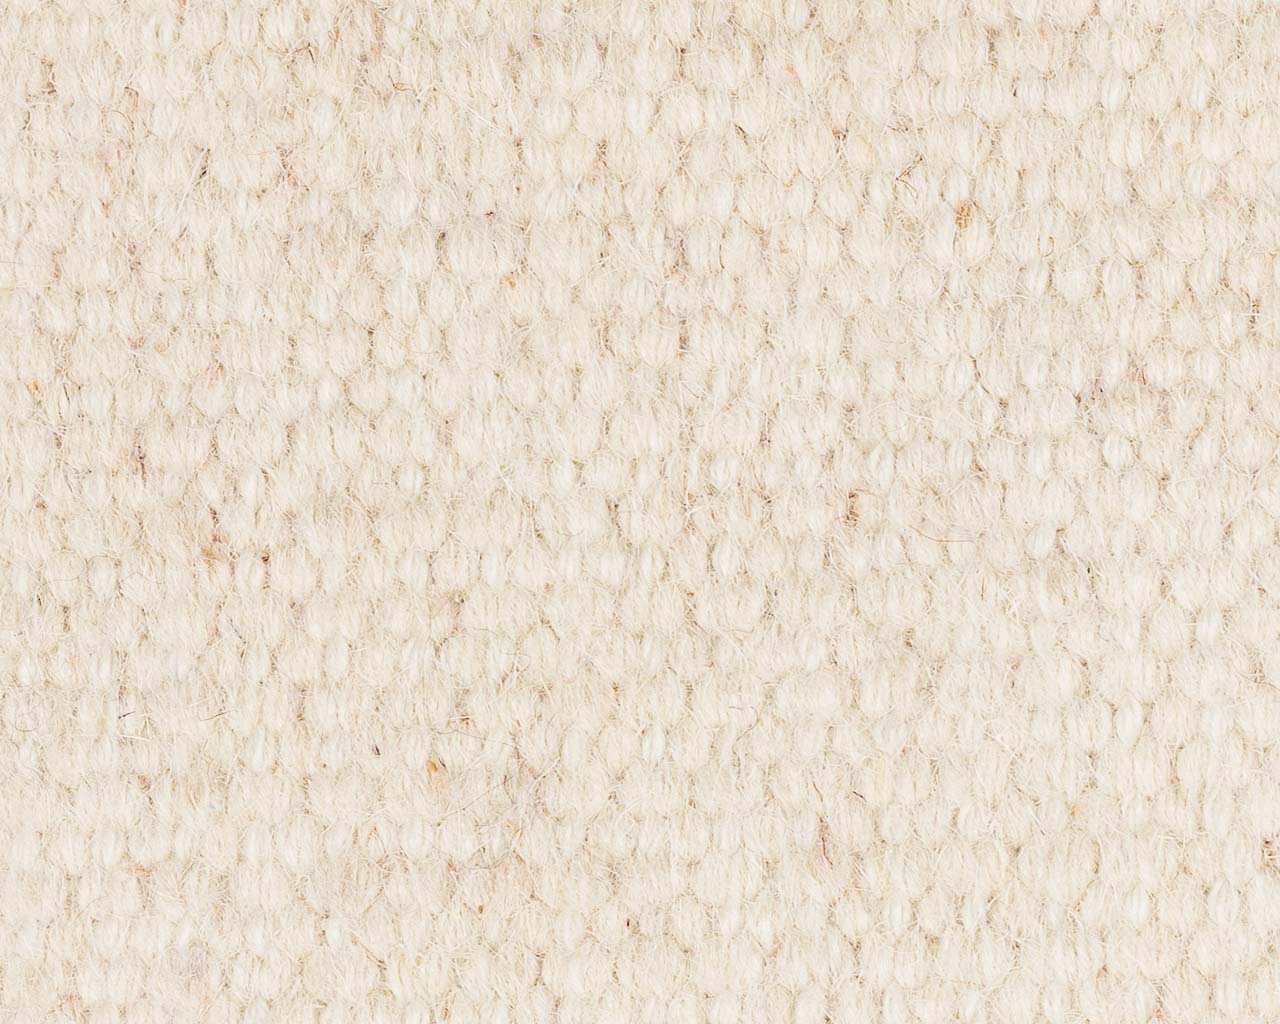 thin and soft rug in white color